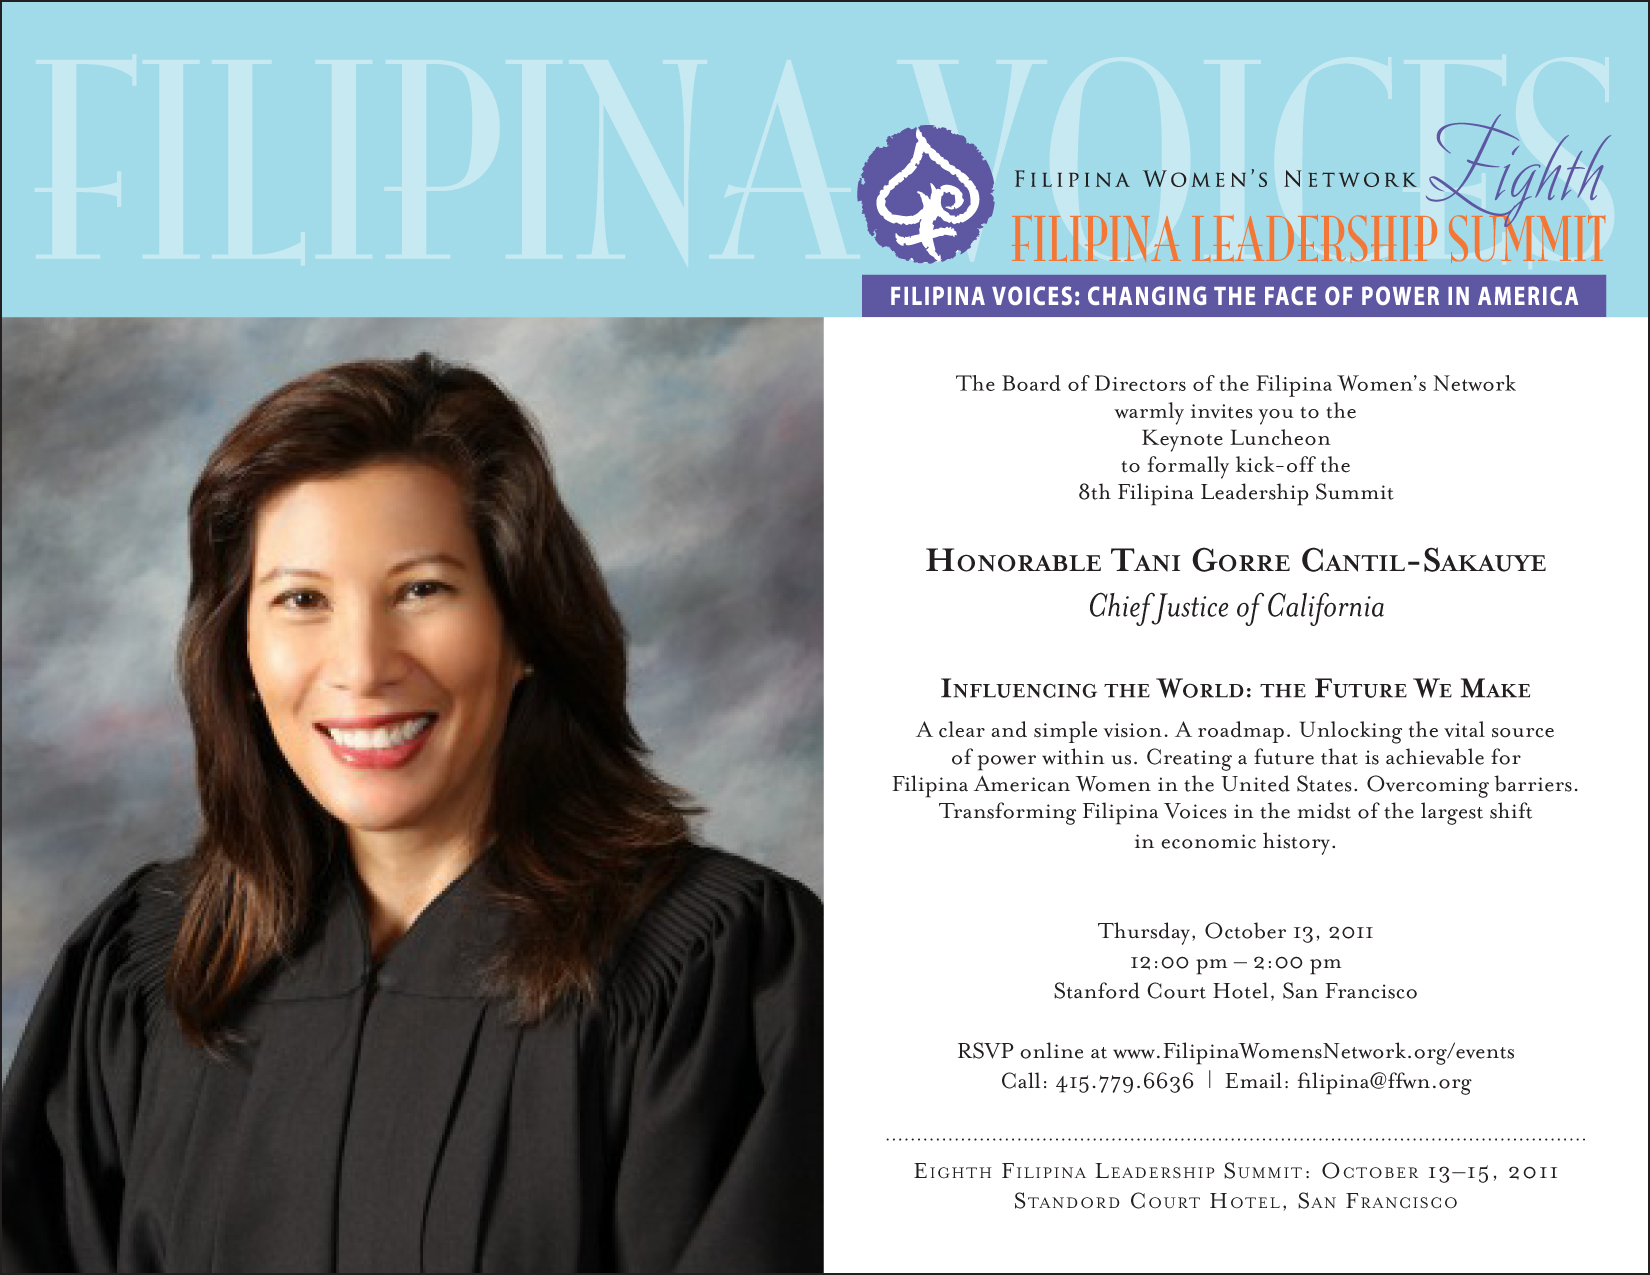 Keynote Luncheon with Chief Justice Tani Gorre Cantil-Sakauye